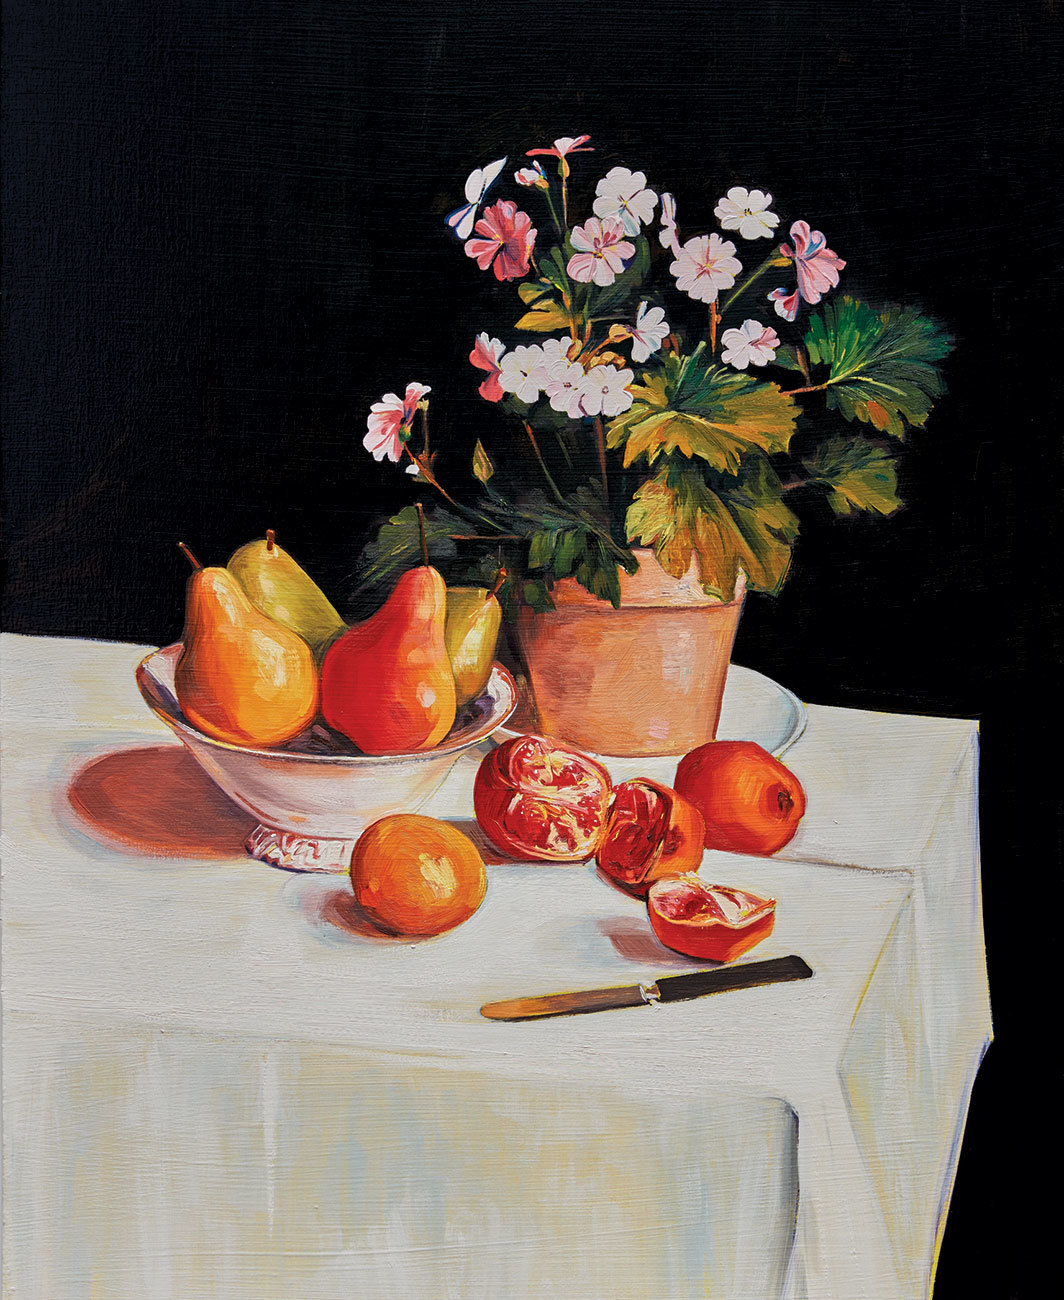 "Sam McKinniss, Still Life with Primroses, Pears and Pomegranates (after Fantin-Latour), 2018, oil and acrylic on canvas, 30 × 24""."